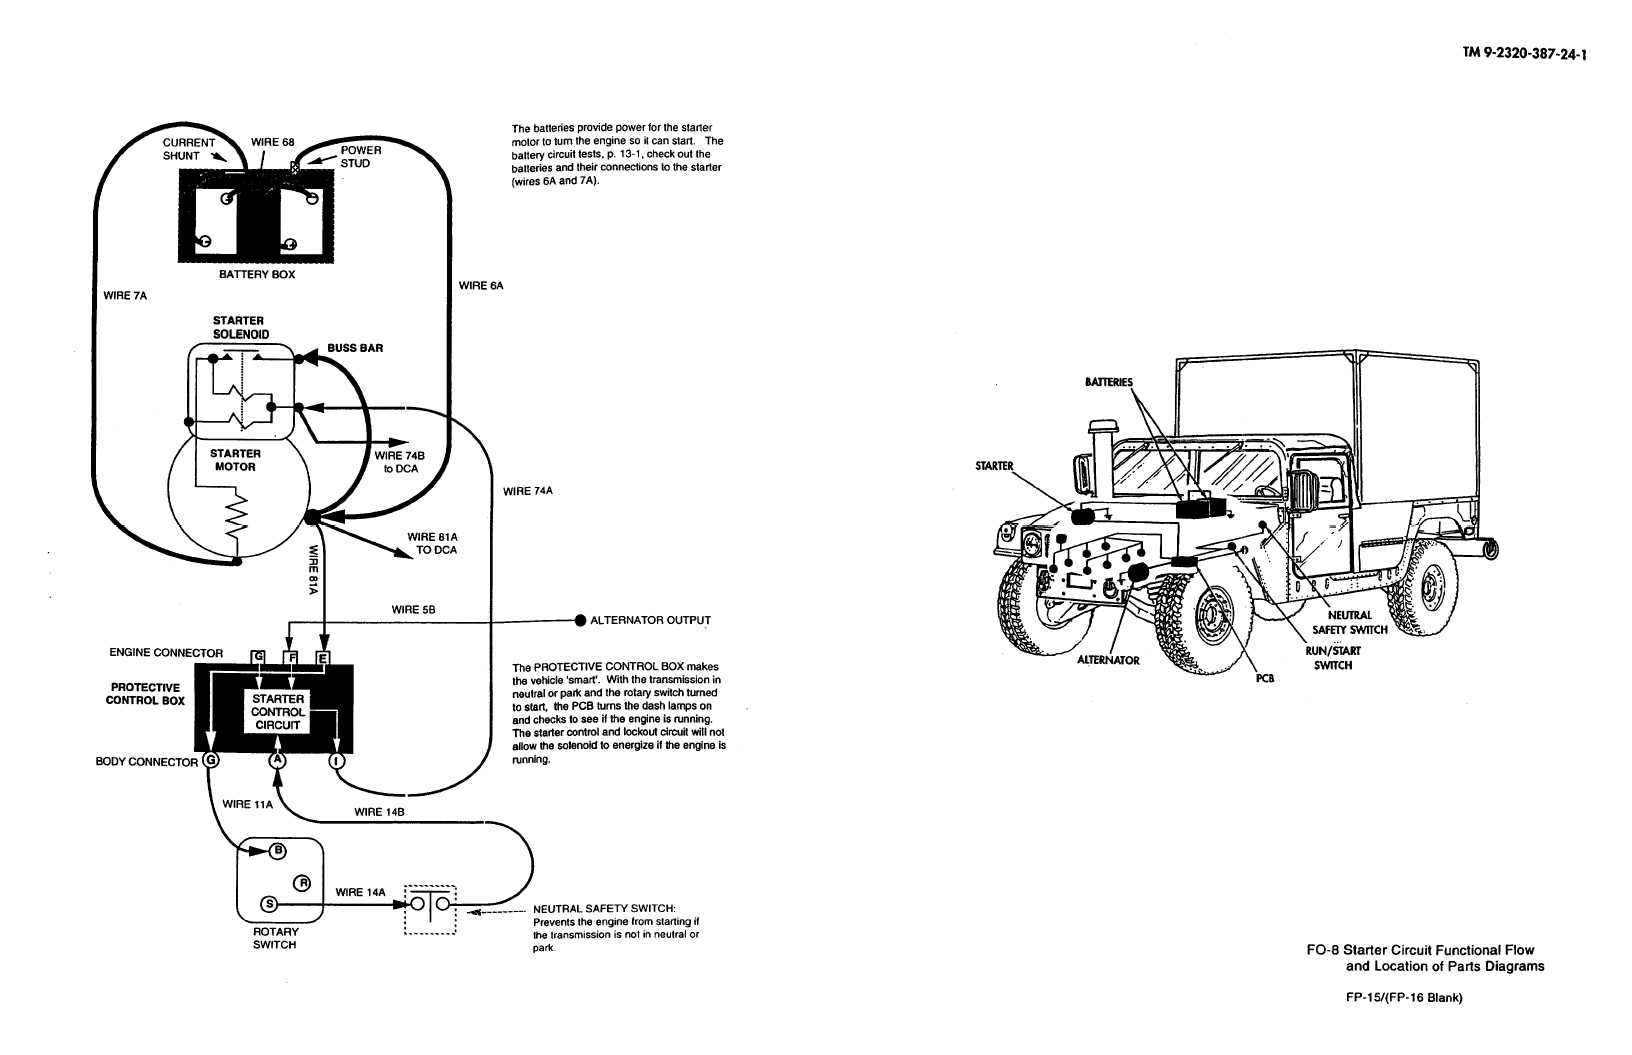 hmmwv wiring schematic fo 8 starter circuit functional flow and location of parts  fo 8 starter circuit functional flow and location of parts